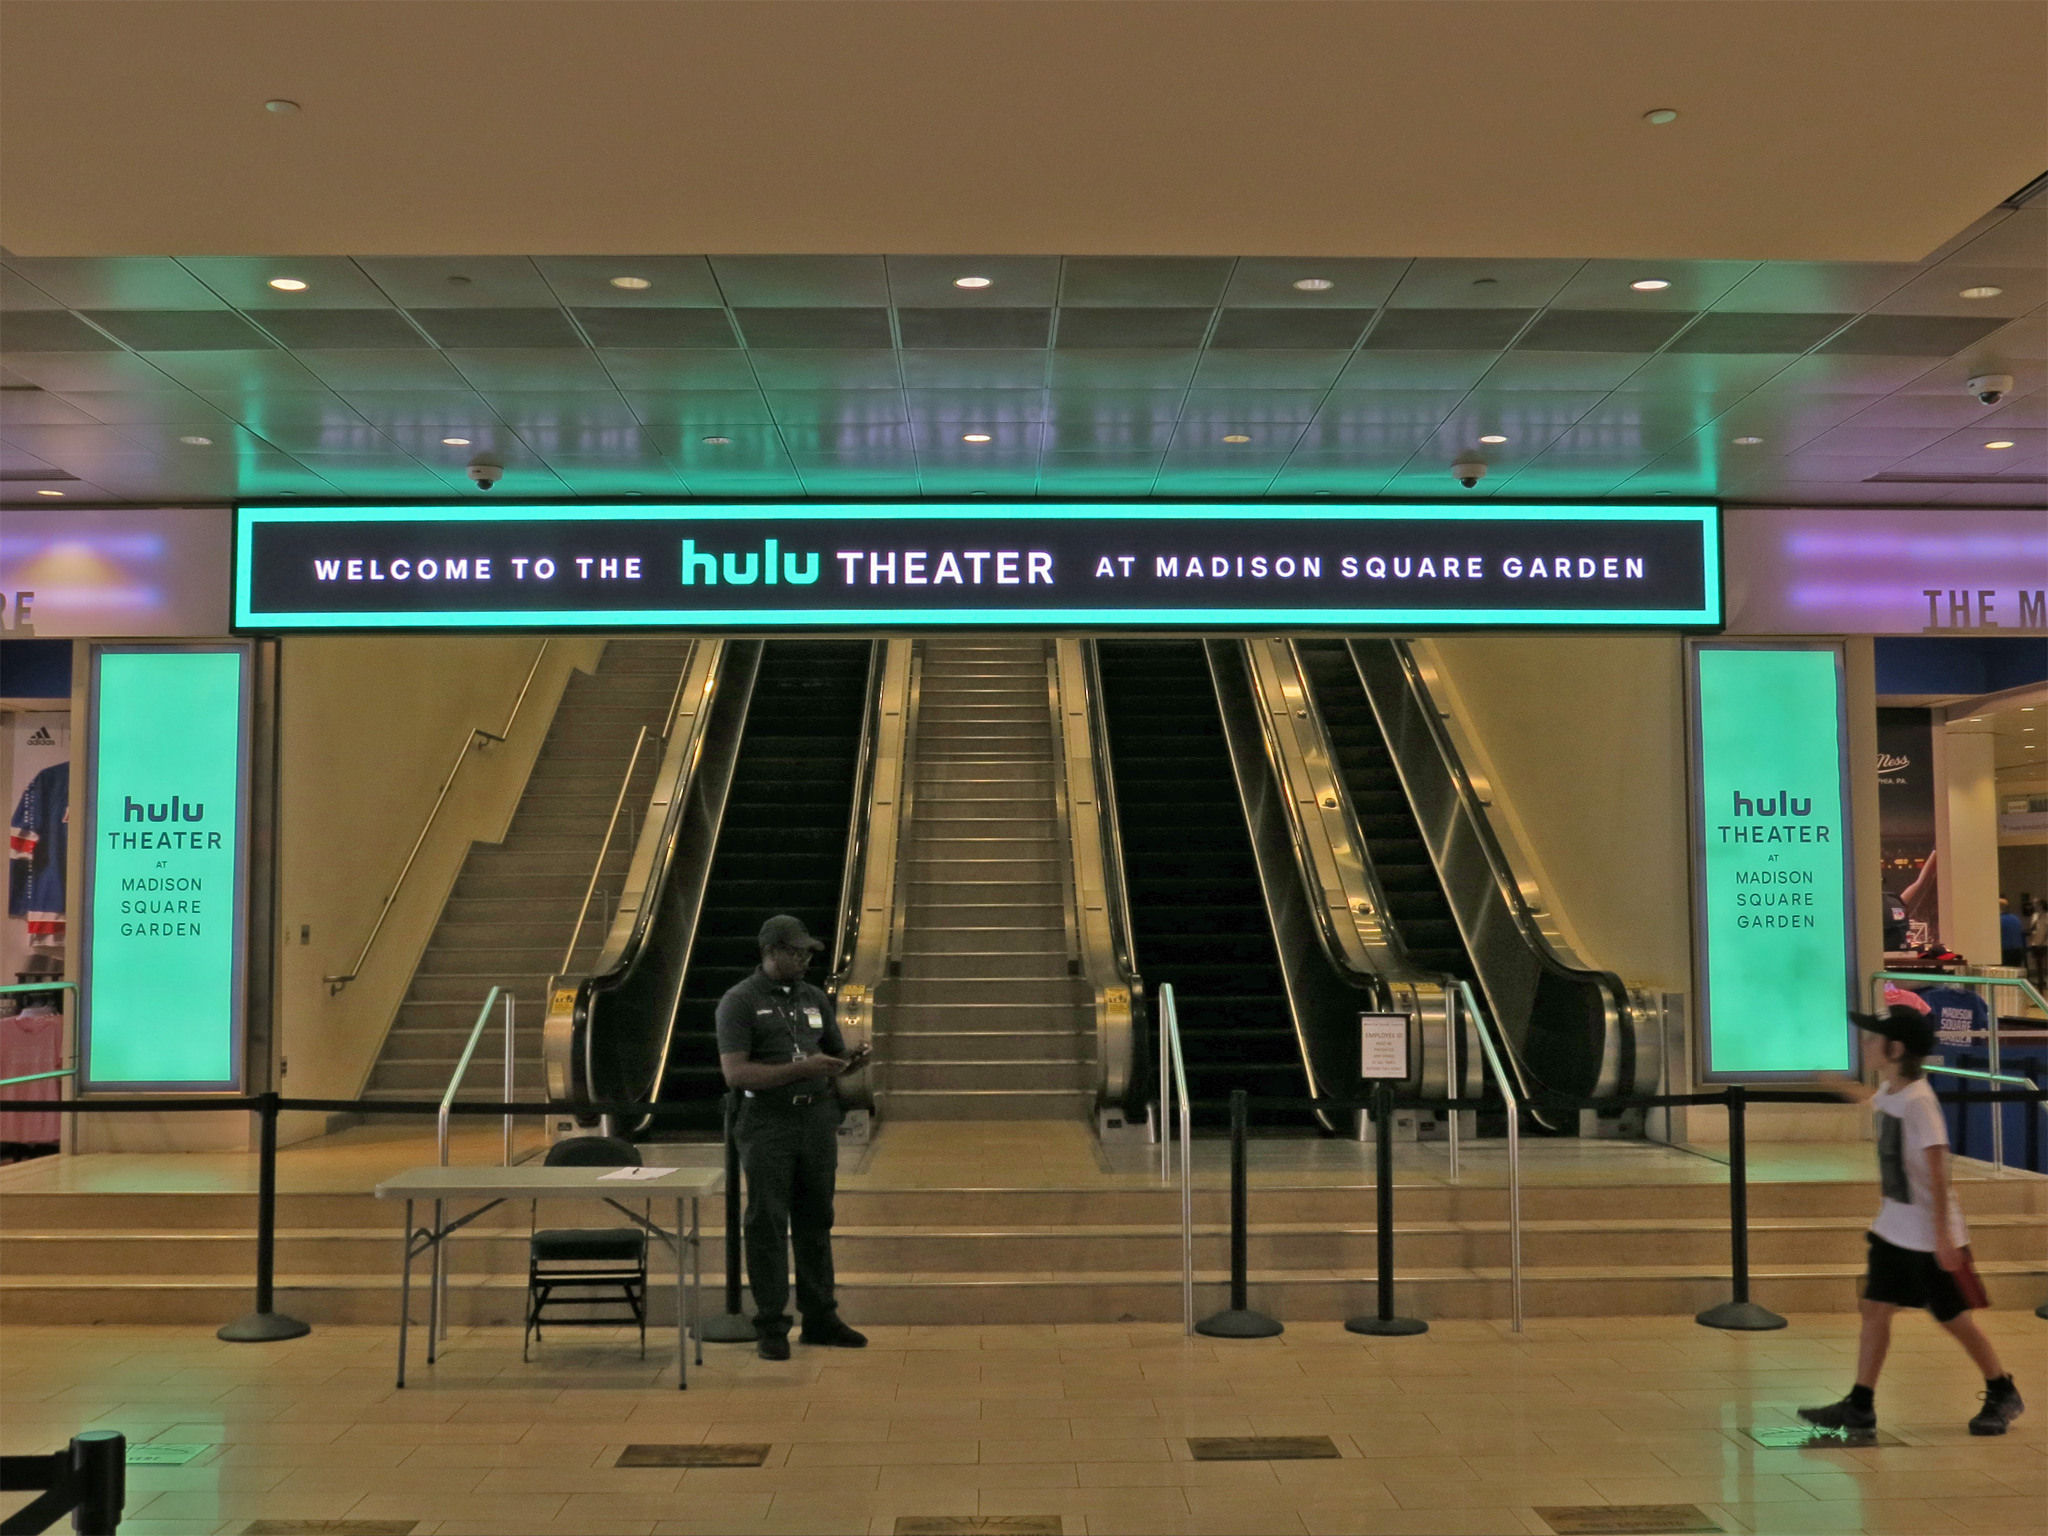 Hulu Theatre at Madison Square Garden Front Facing In Door Entrance